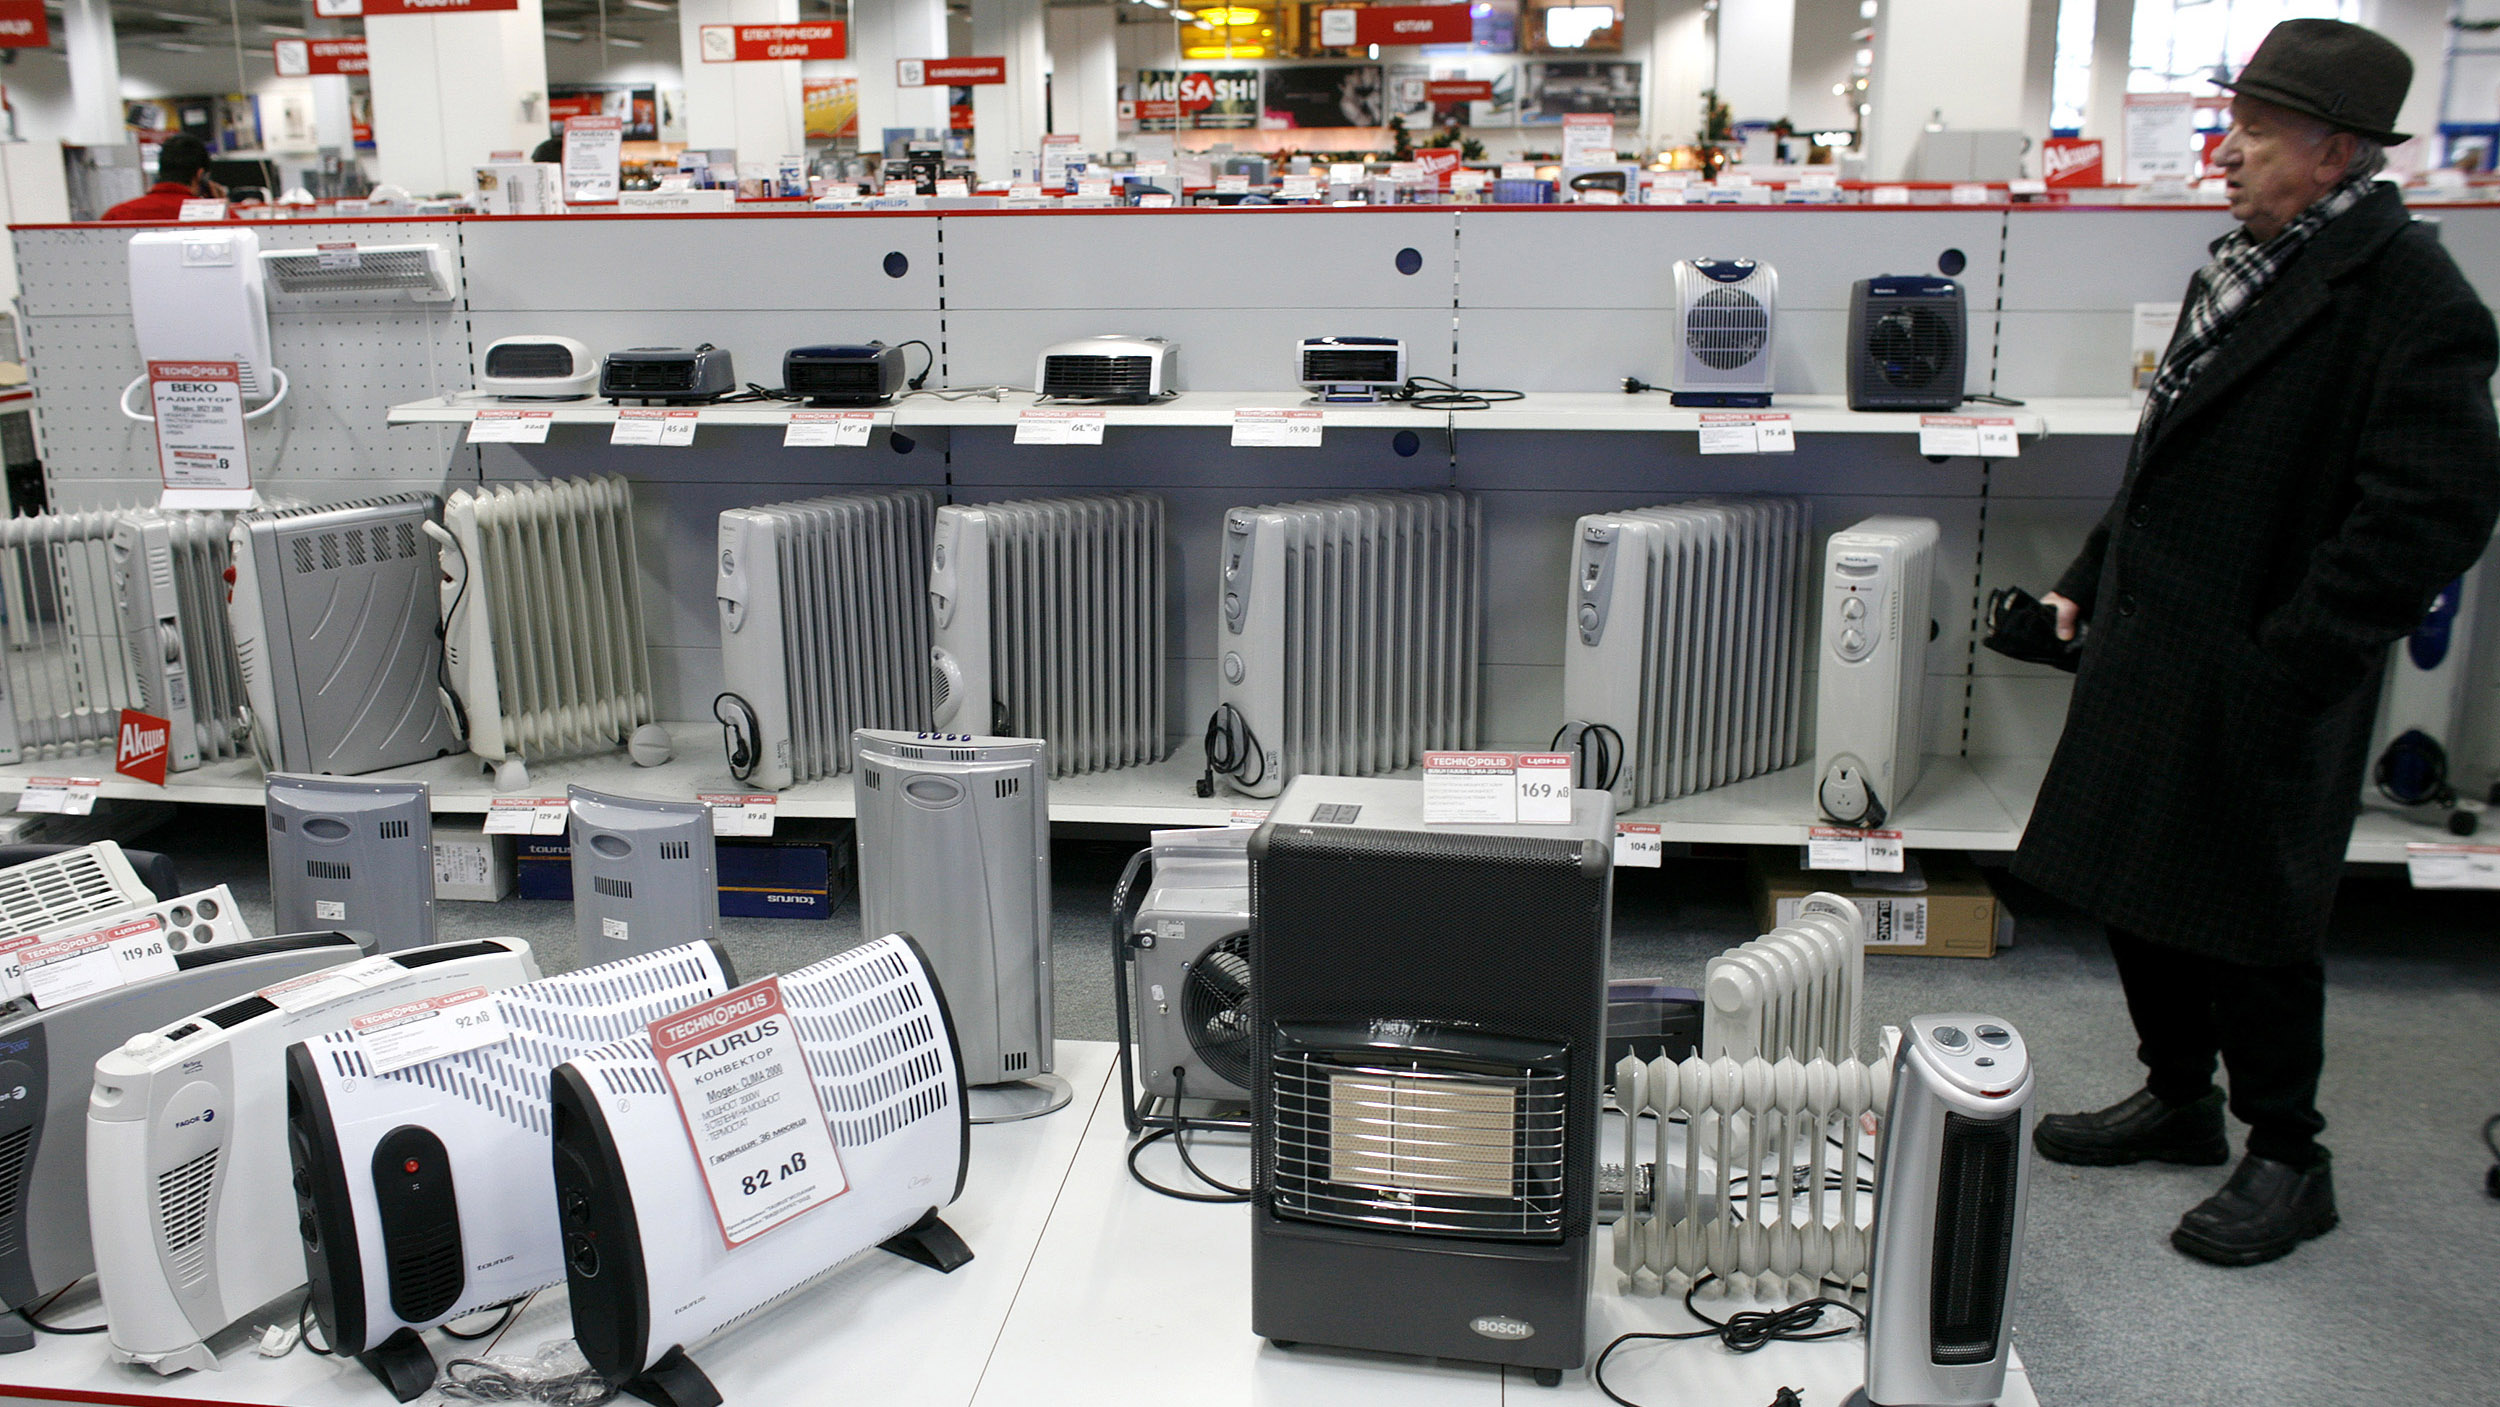 A customer looks at heating appliances displayed in a consumer electronics store in Sofia January 7, 2009. Thousands of Bulgarians spent a freezing night without central heating, and some companies and schools did not operate on Wednesday after Russian gas supplies were halted to southeastern Europe.  REUTERS/Stoyan Nenov   (BULGARIA) - GM1E5171GGY01